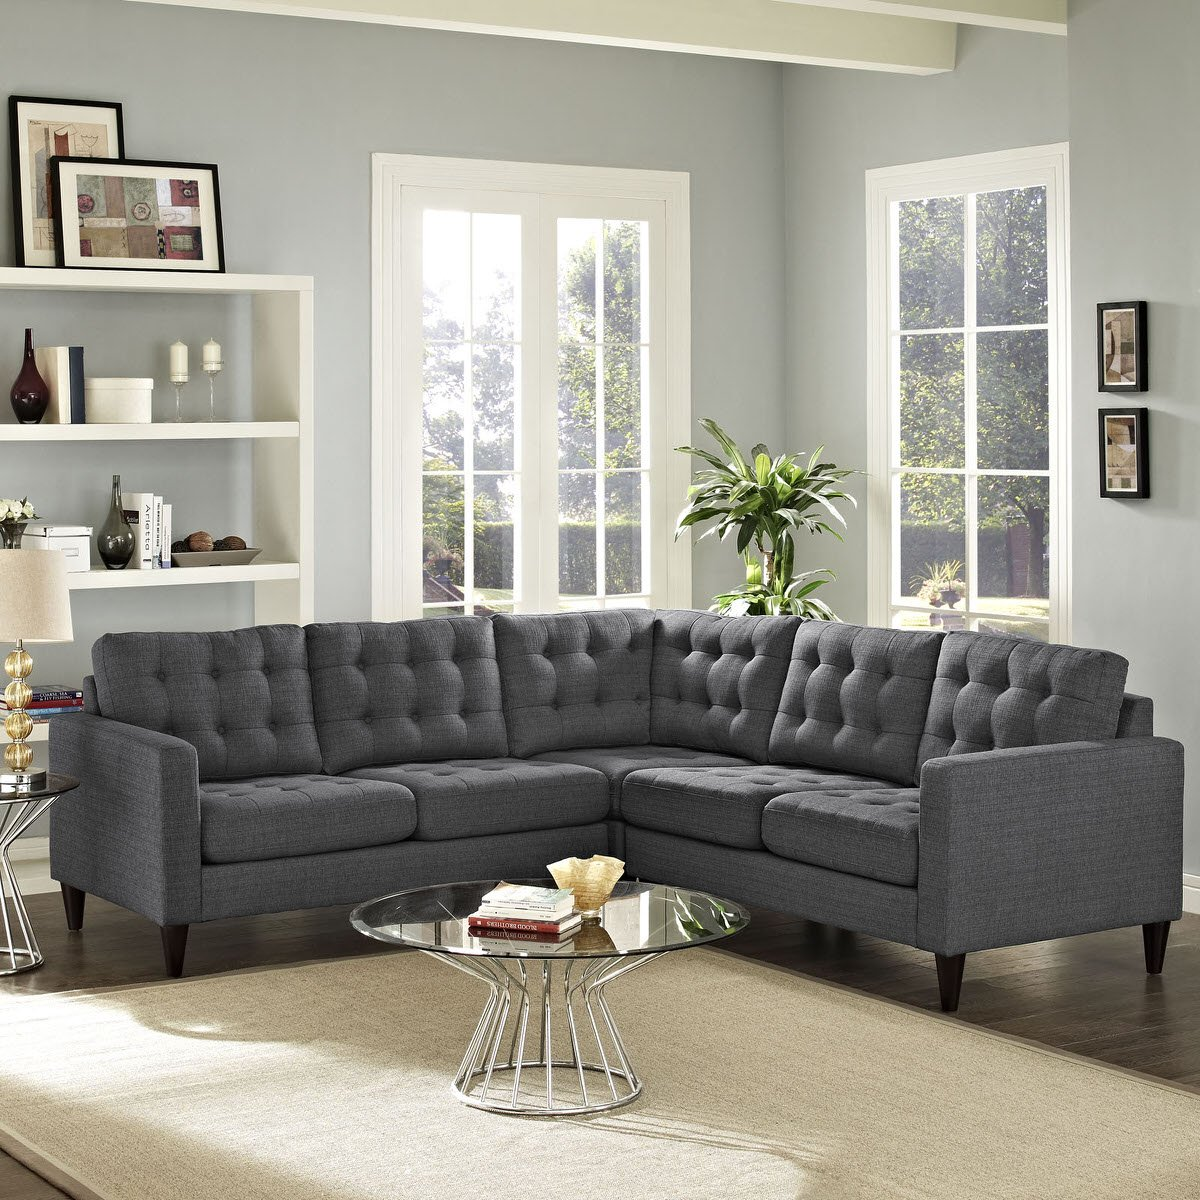 Empress 3 Piece Upholstered Fabric Sectional Sofa Set Gray by Modern Living